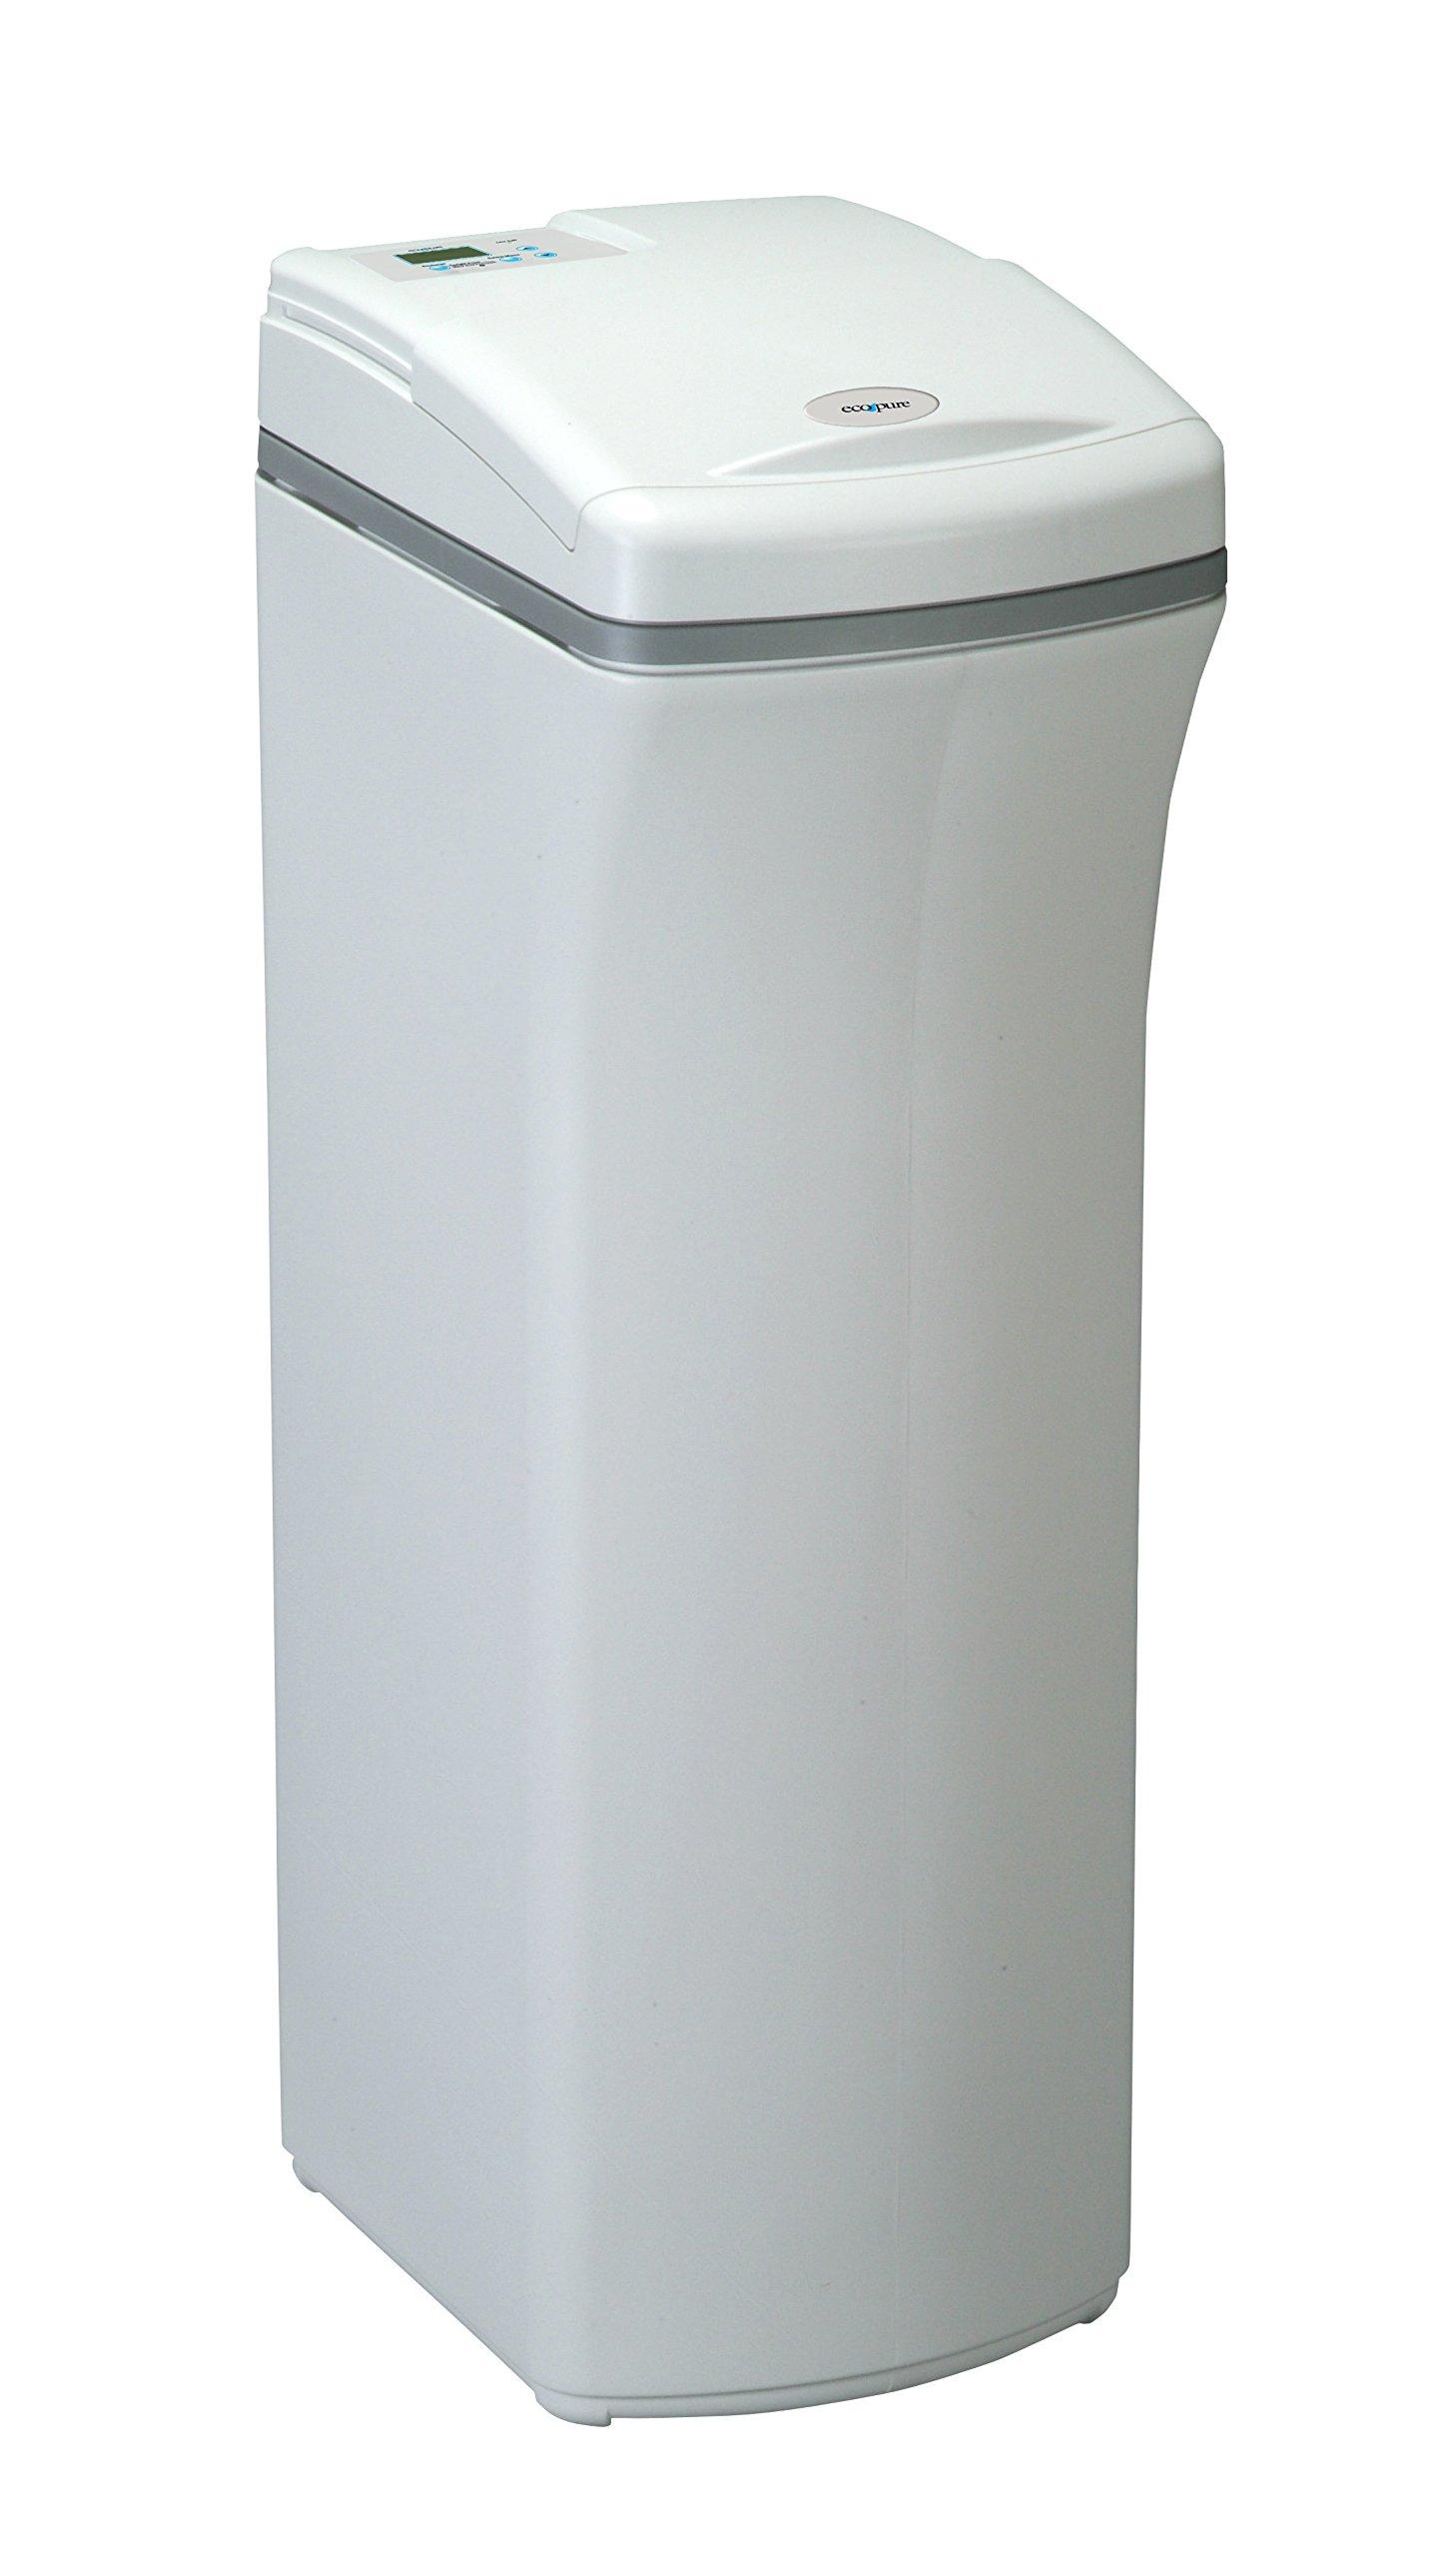 EcoPure EP7140 40,000 Grain Water Softener - Built in USA - NSF Certified - Best Value - Demand Initiated Regeneration